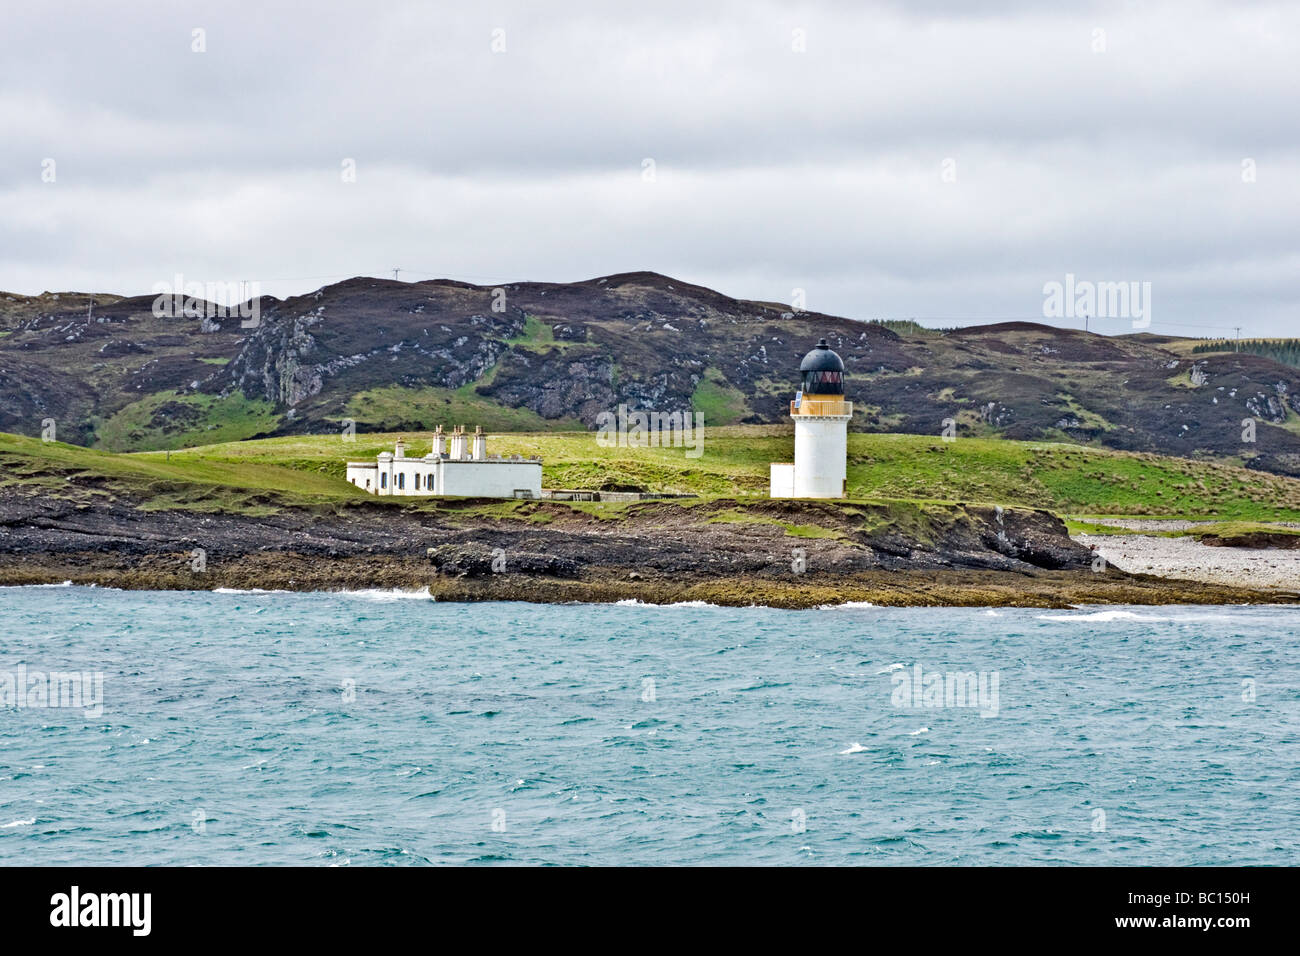 Lighthouse at the entrance to Stornoway on the Isle of Lewis Outer Hebrides Scotland - Stock Image